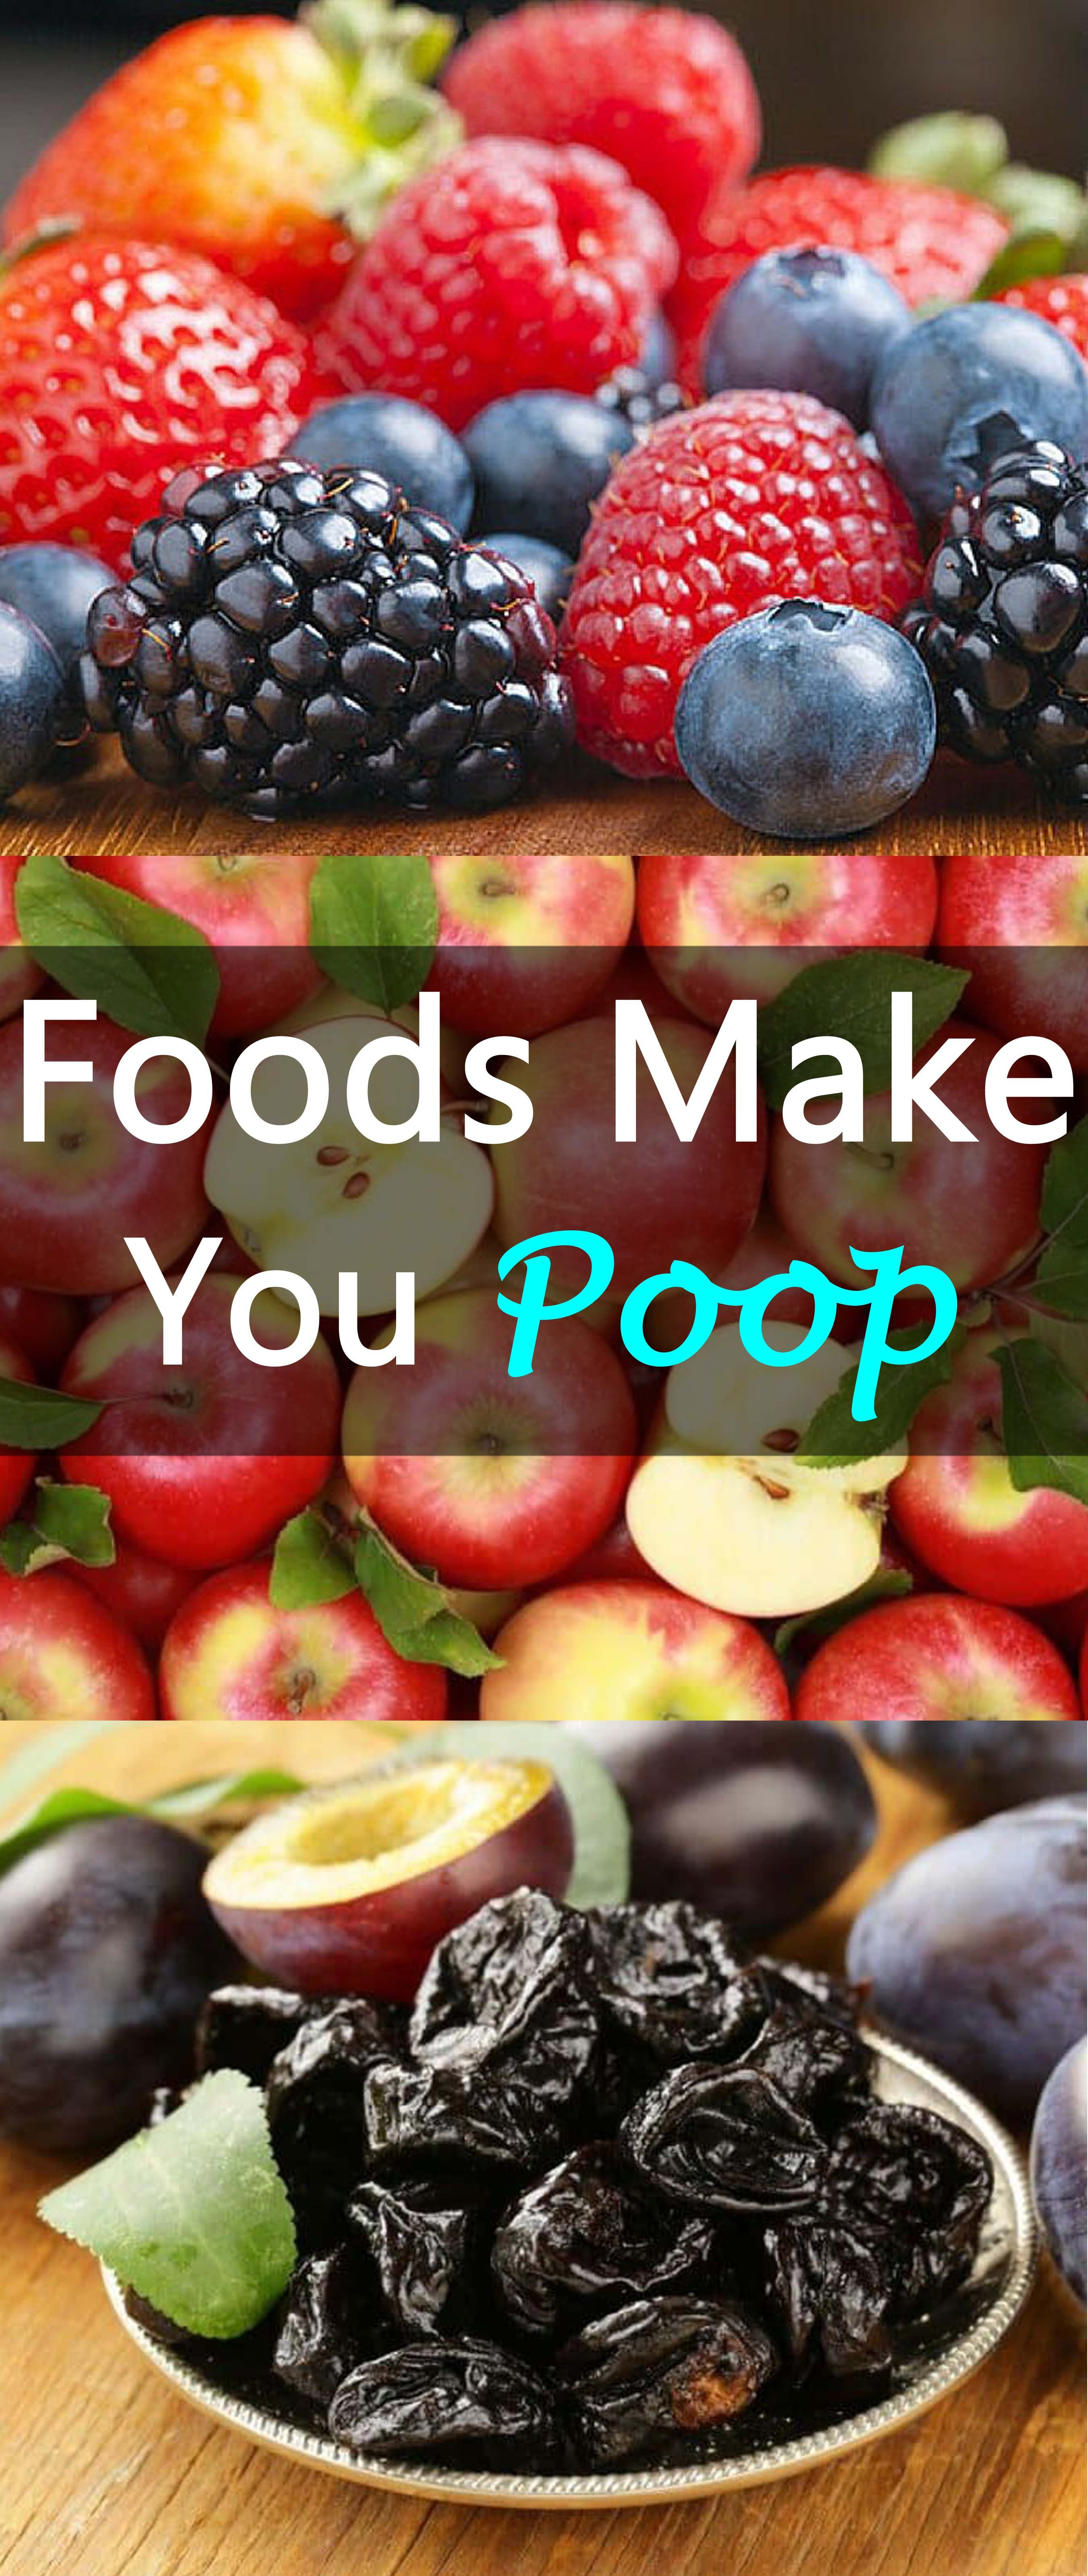 17 foods that make you poop- for constipation relief | constipation